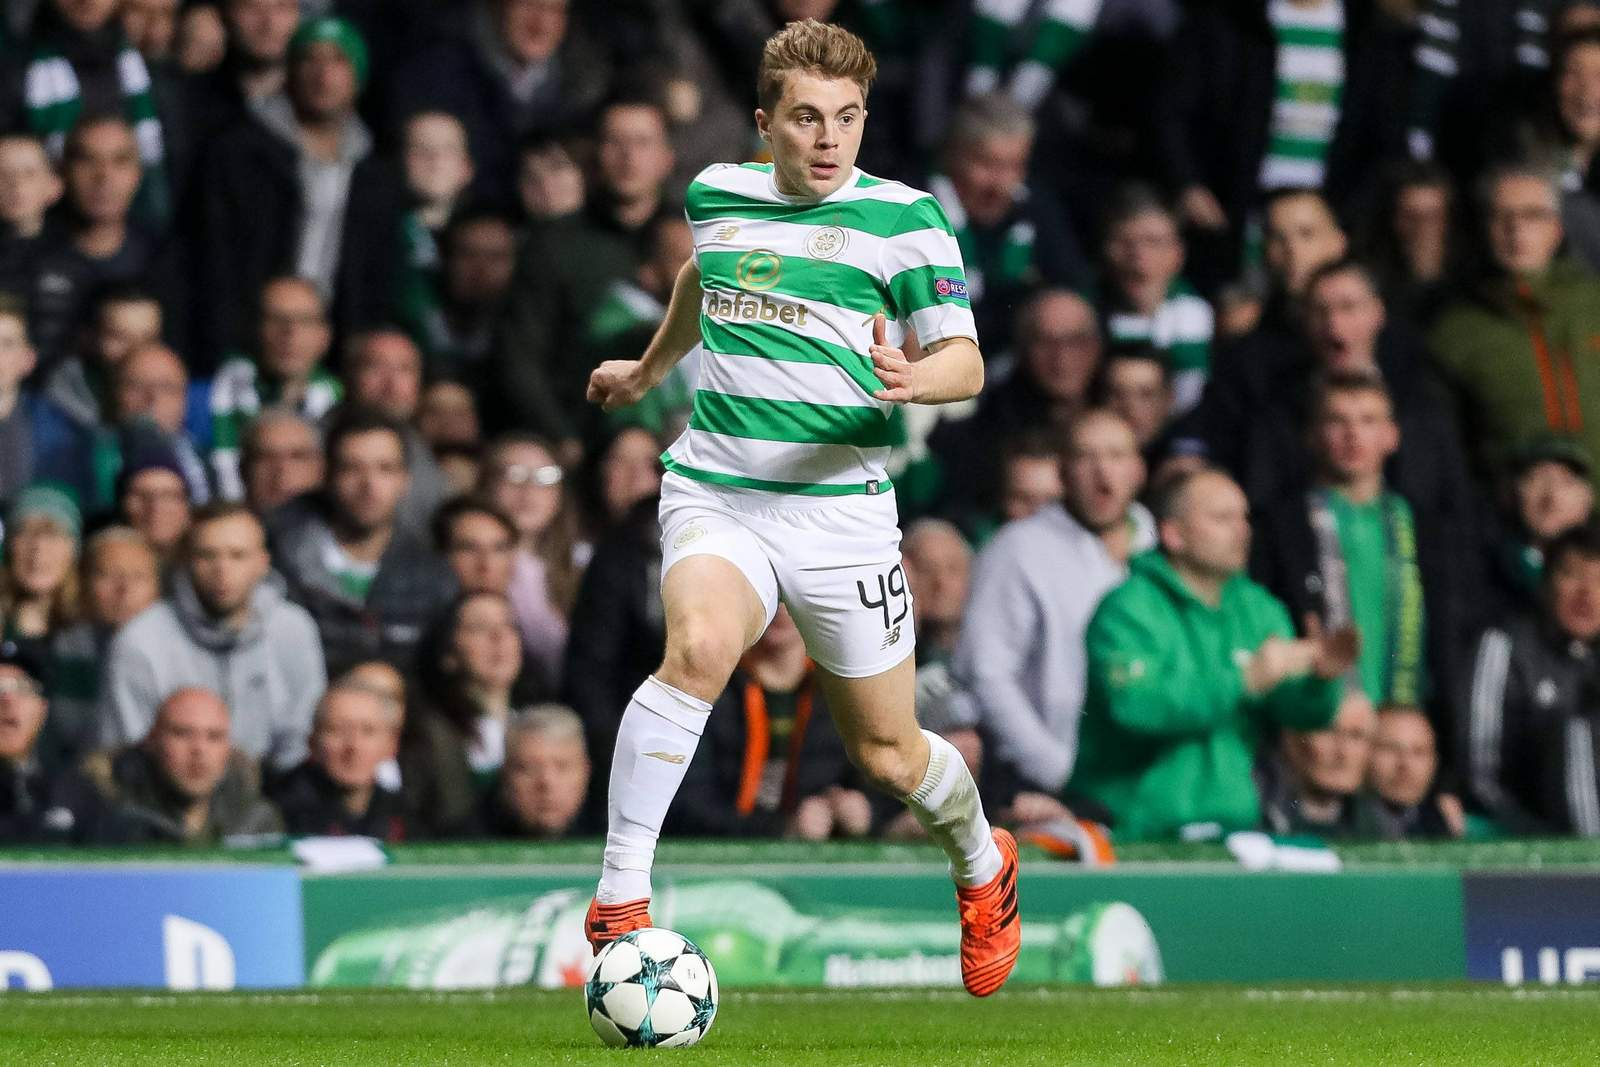 James Forrest von Celtic Glasgow